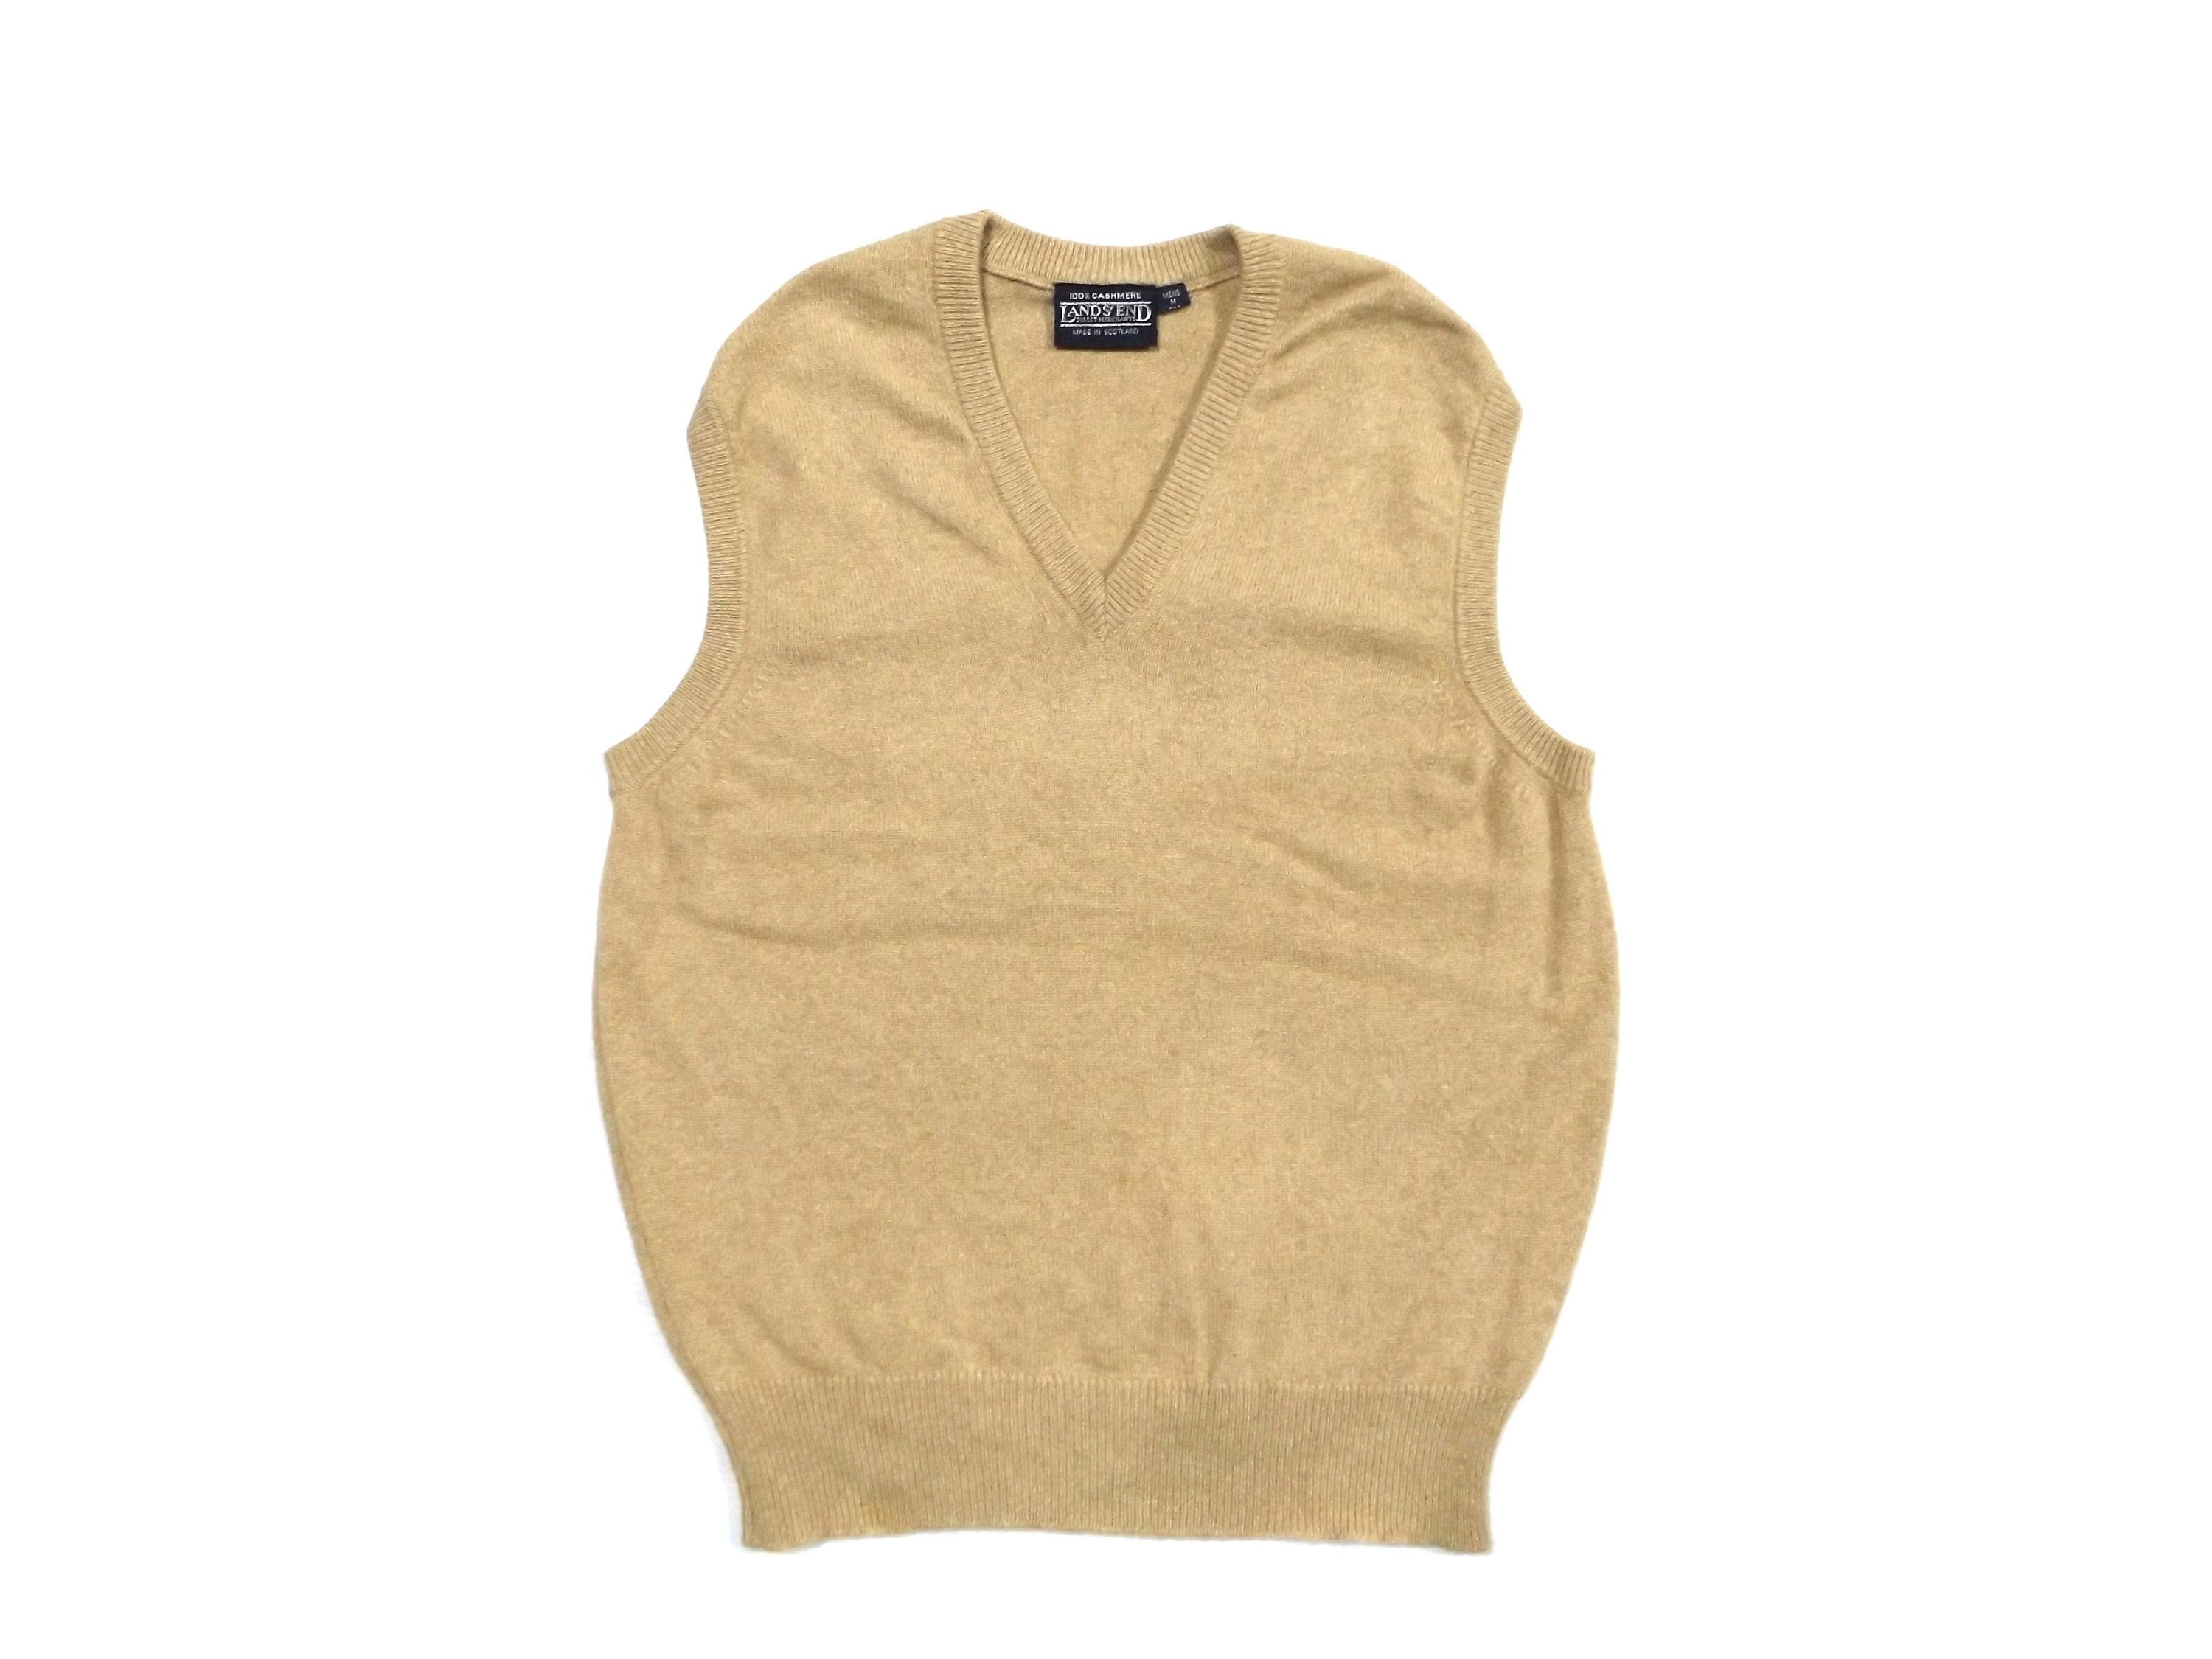 0e4d742a228 Boyfriend s tan cashmere sweater vest   made in